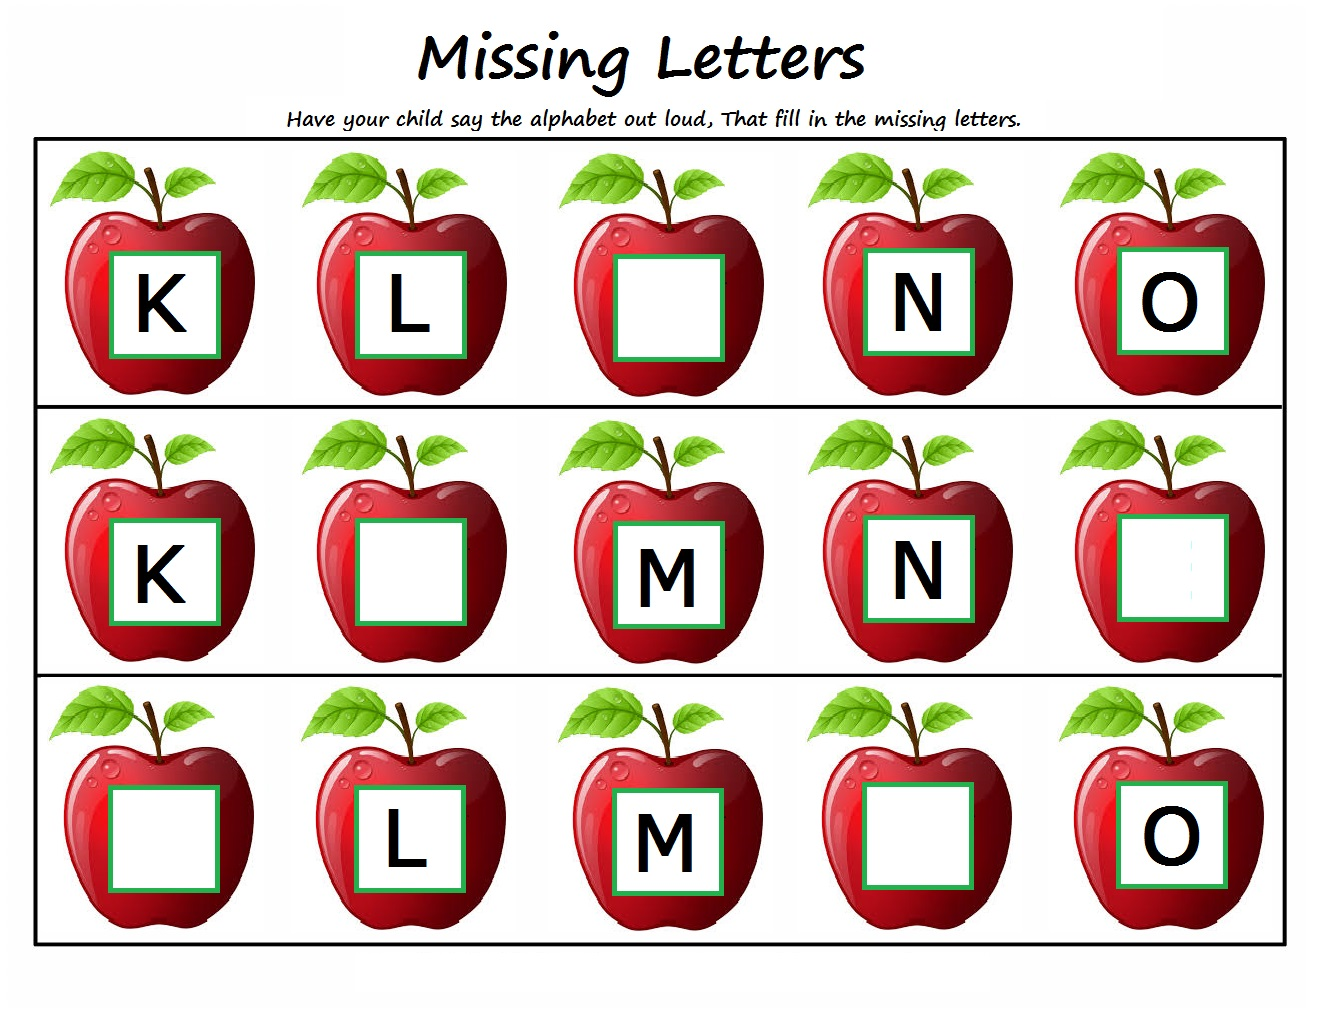 Kindergarten Worksheets Kindergarten Worksheets Missing Letters – Missing Alphabet Worksheets for Kindergarten